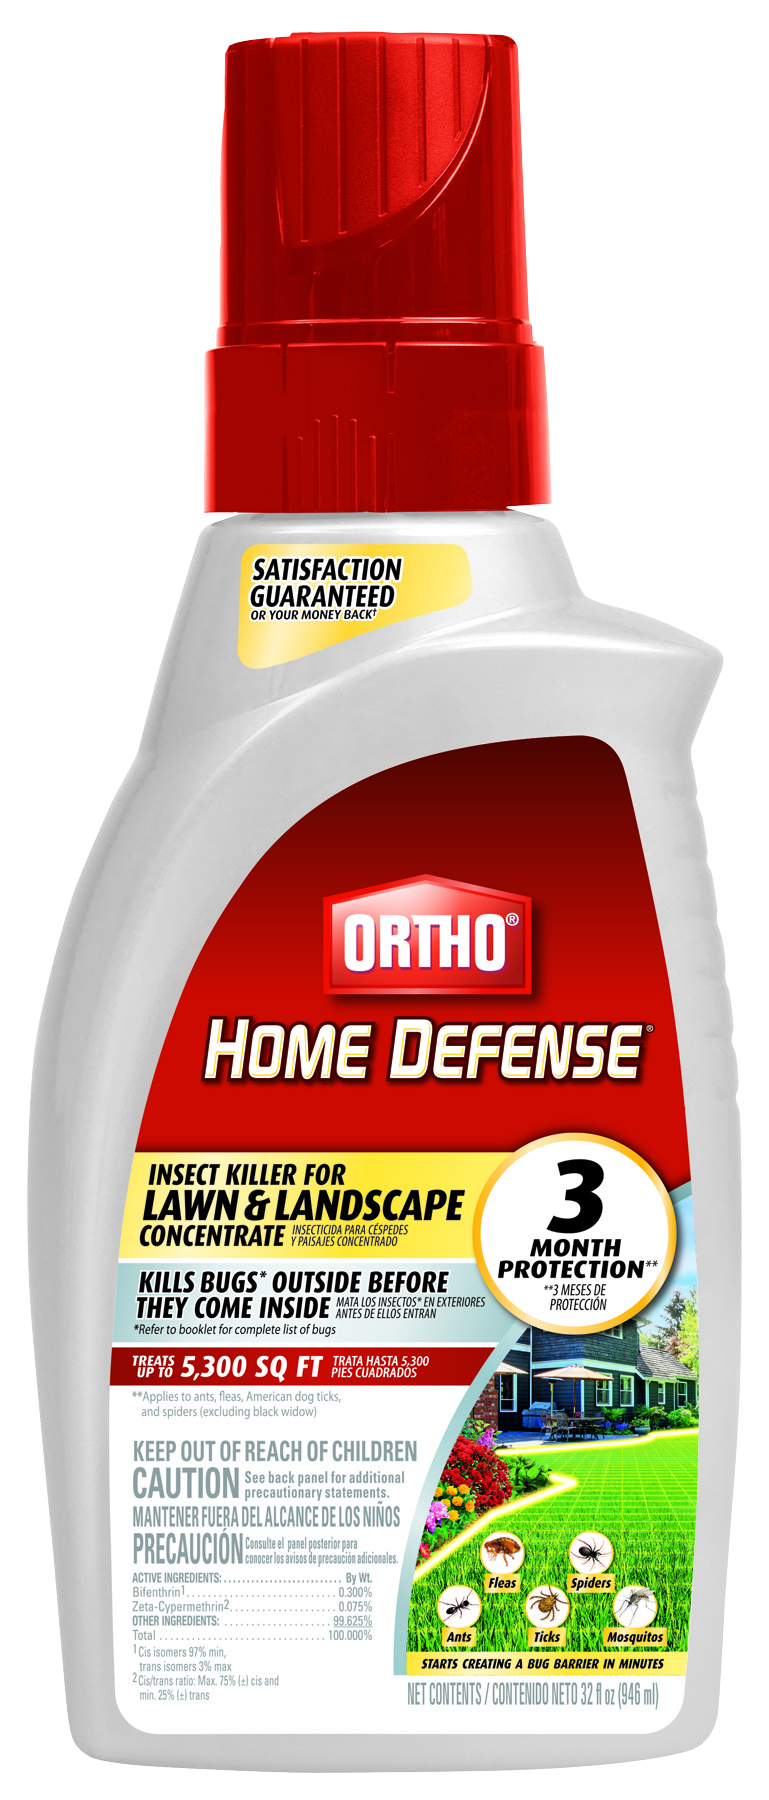 Ortho Home Defense Insect Killer Lawn Landscape Concentrate